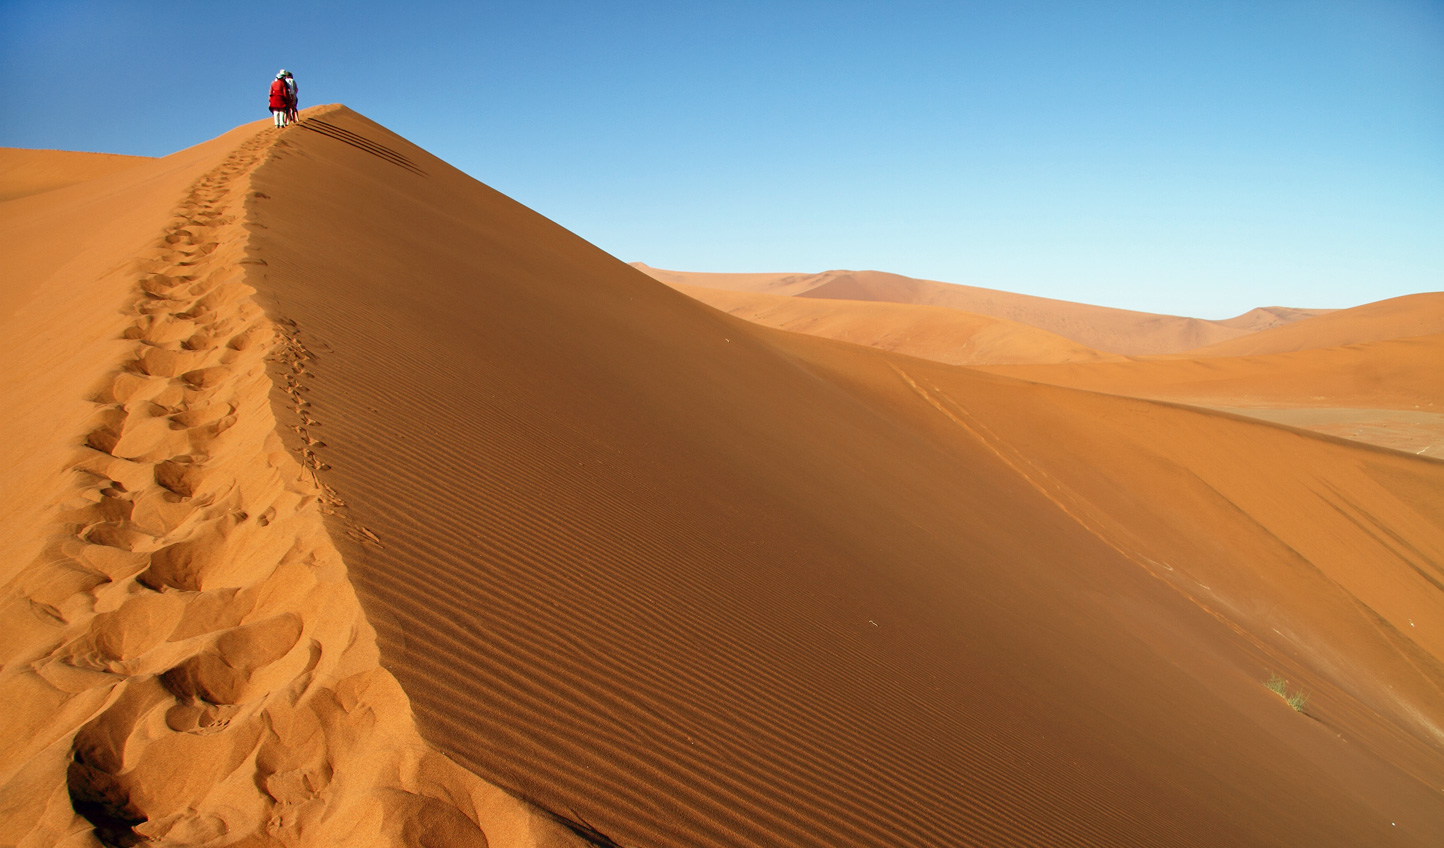 Hike atop Namibia's mighty dunes and soak in the views